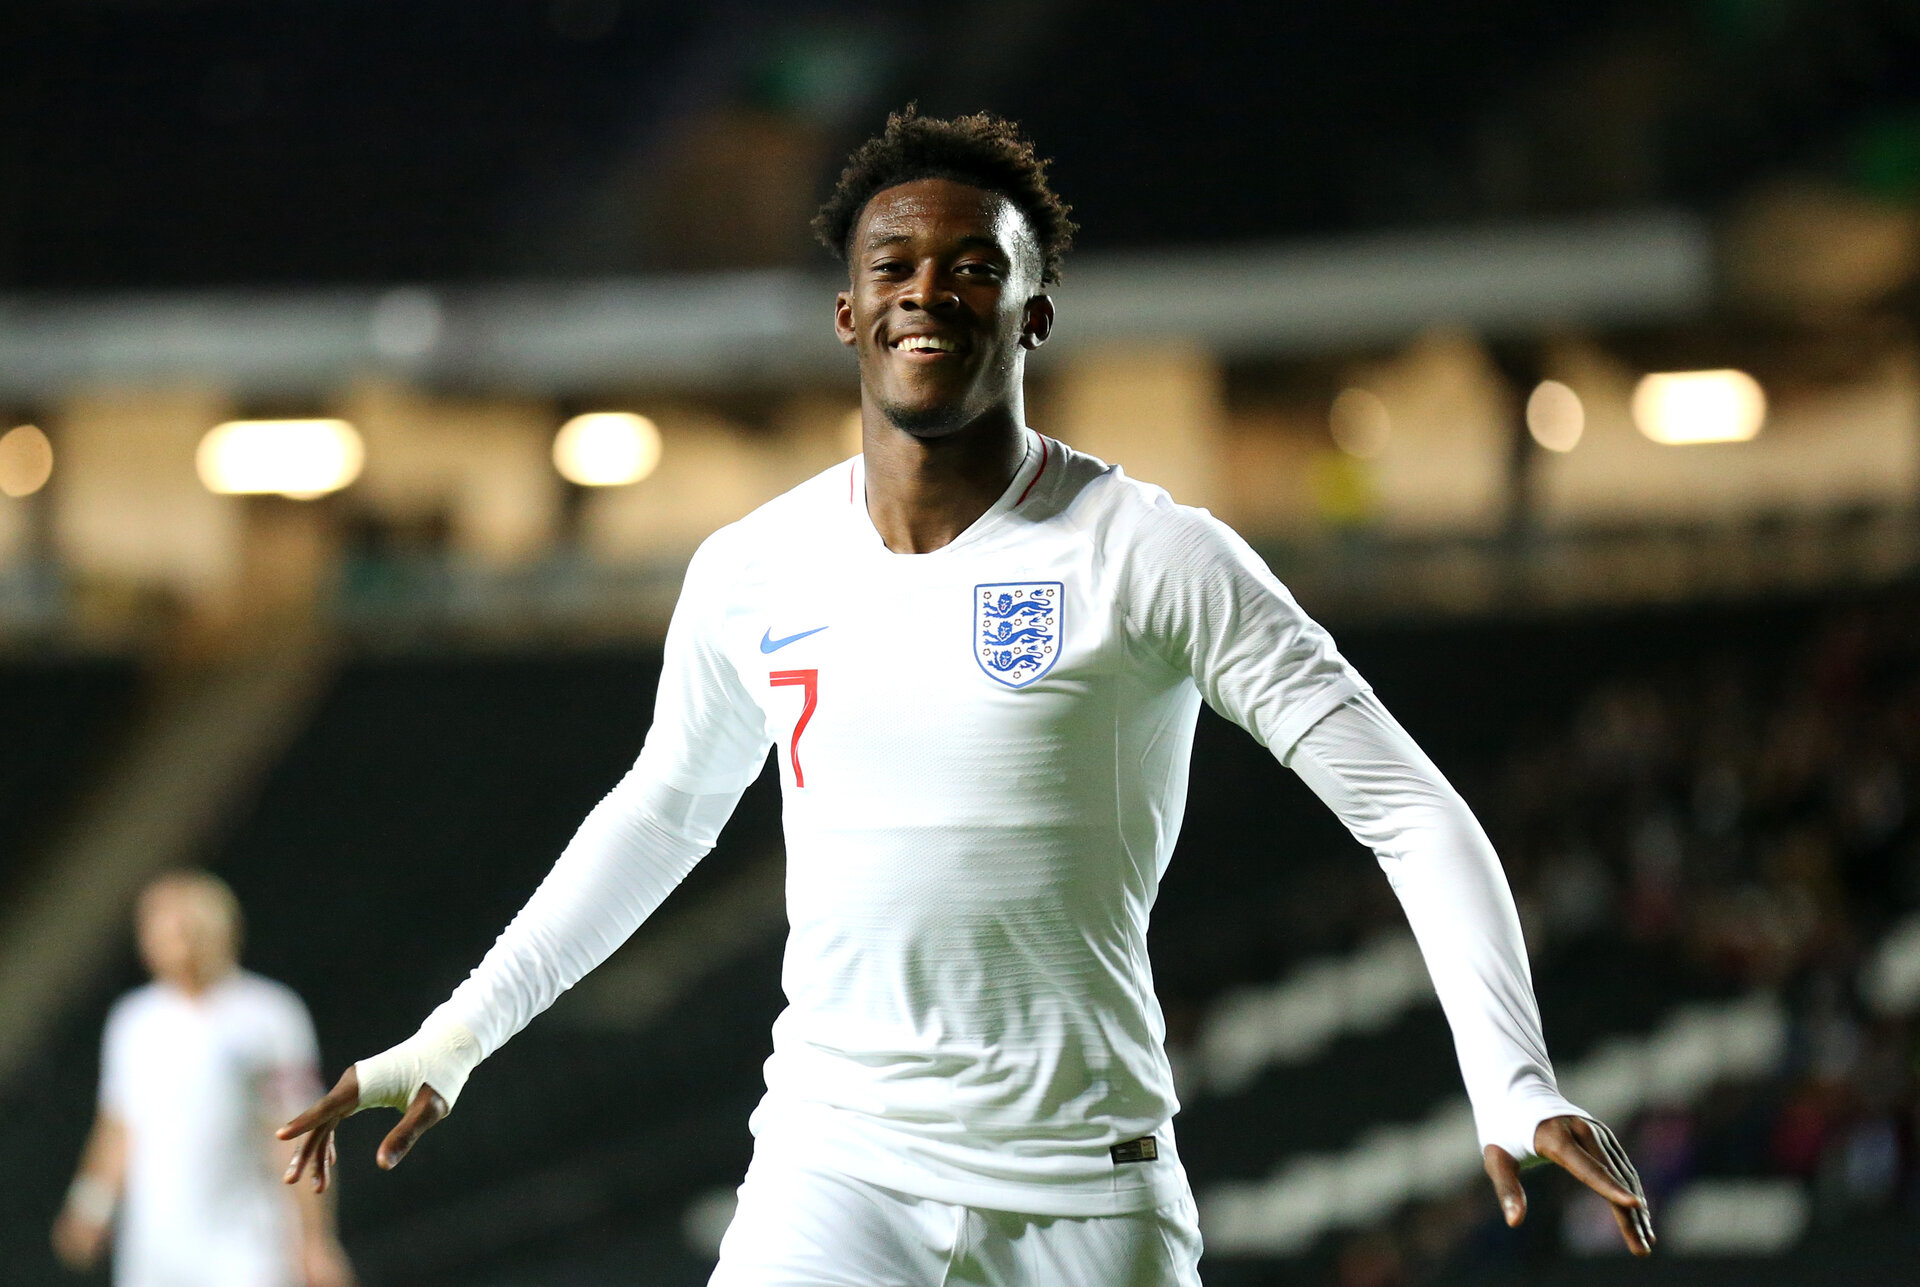 MILTON KEYNES, ENGLAND - OCTOBER 15:  Callum Hudson-Odoi of England celebrates after scoring his sides first goal during the UEFA Under 21 Championship Qualifier between England and Austria at Stadium MK on October 15, 2019 in Milton Keynes, England. (Photo by Alex Pantling/Getty Images)